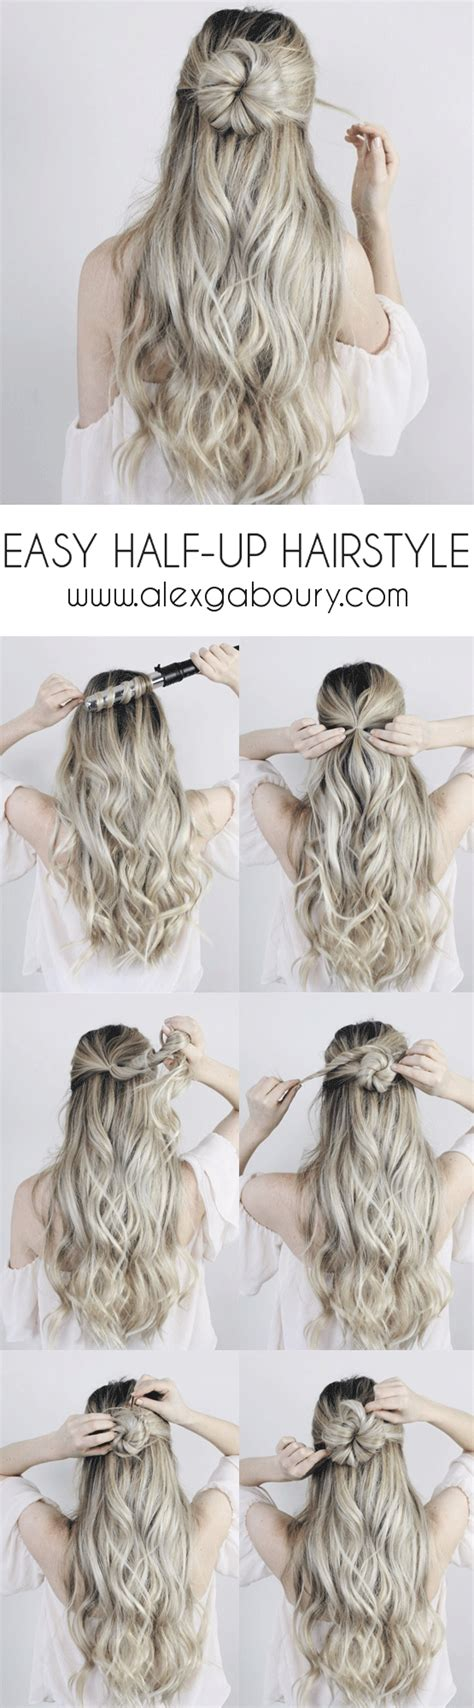 half up half hairstyles easy easy half up hairstyle with a twist alex gaboury